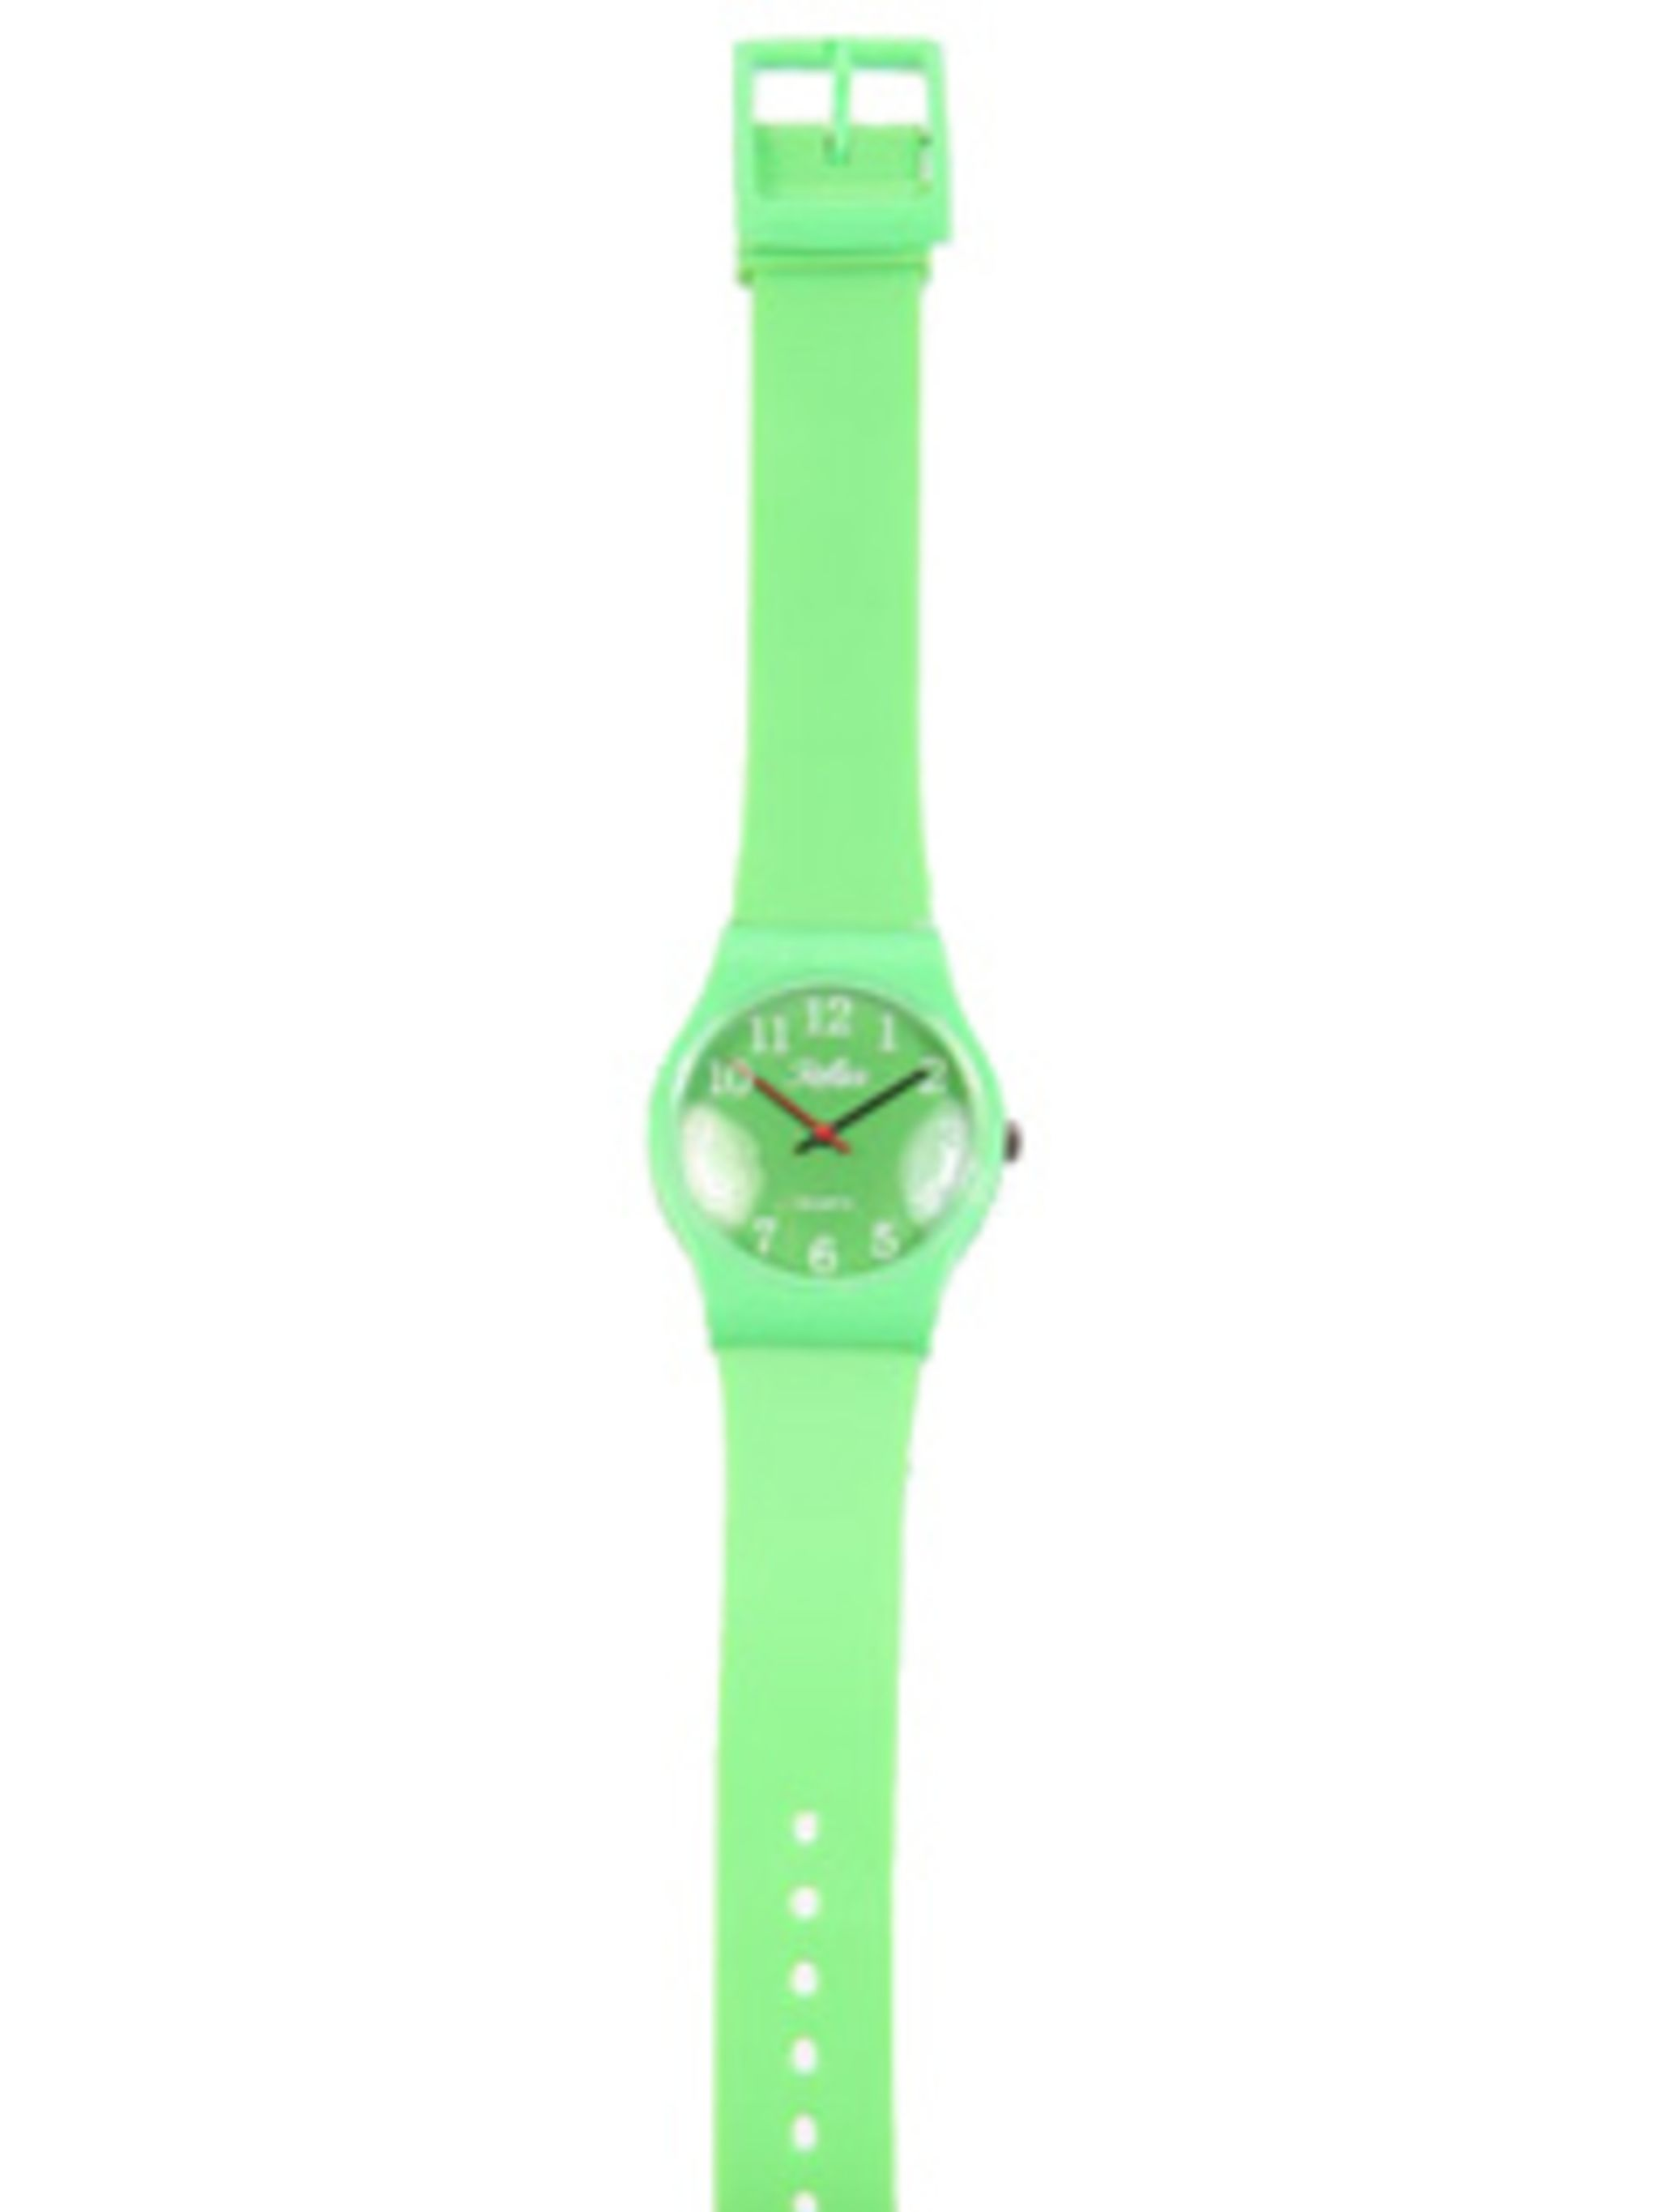 "<p><a href=""http://www.urbanoutfitters.co.uk/plastic-watch/invt/5769461482008/&bklist=icat,5,shop,womens,womensaccessories,newforspringacc"">Urban Outfitters</a> plastic watch, £18, </p>"